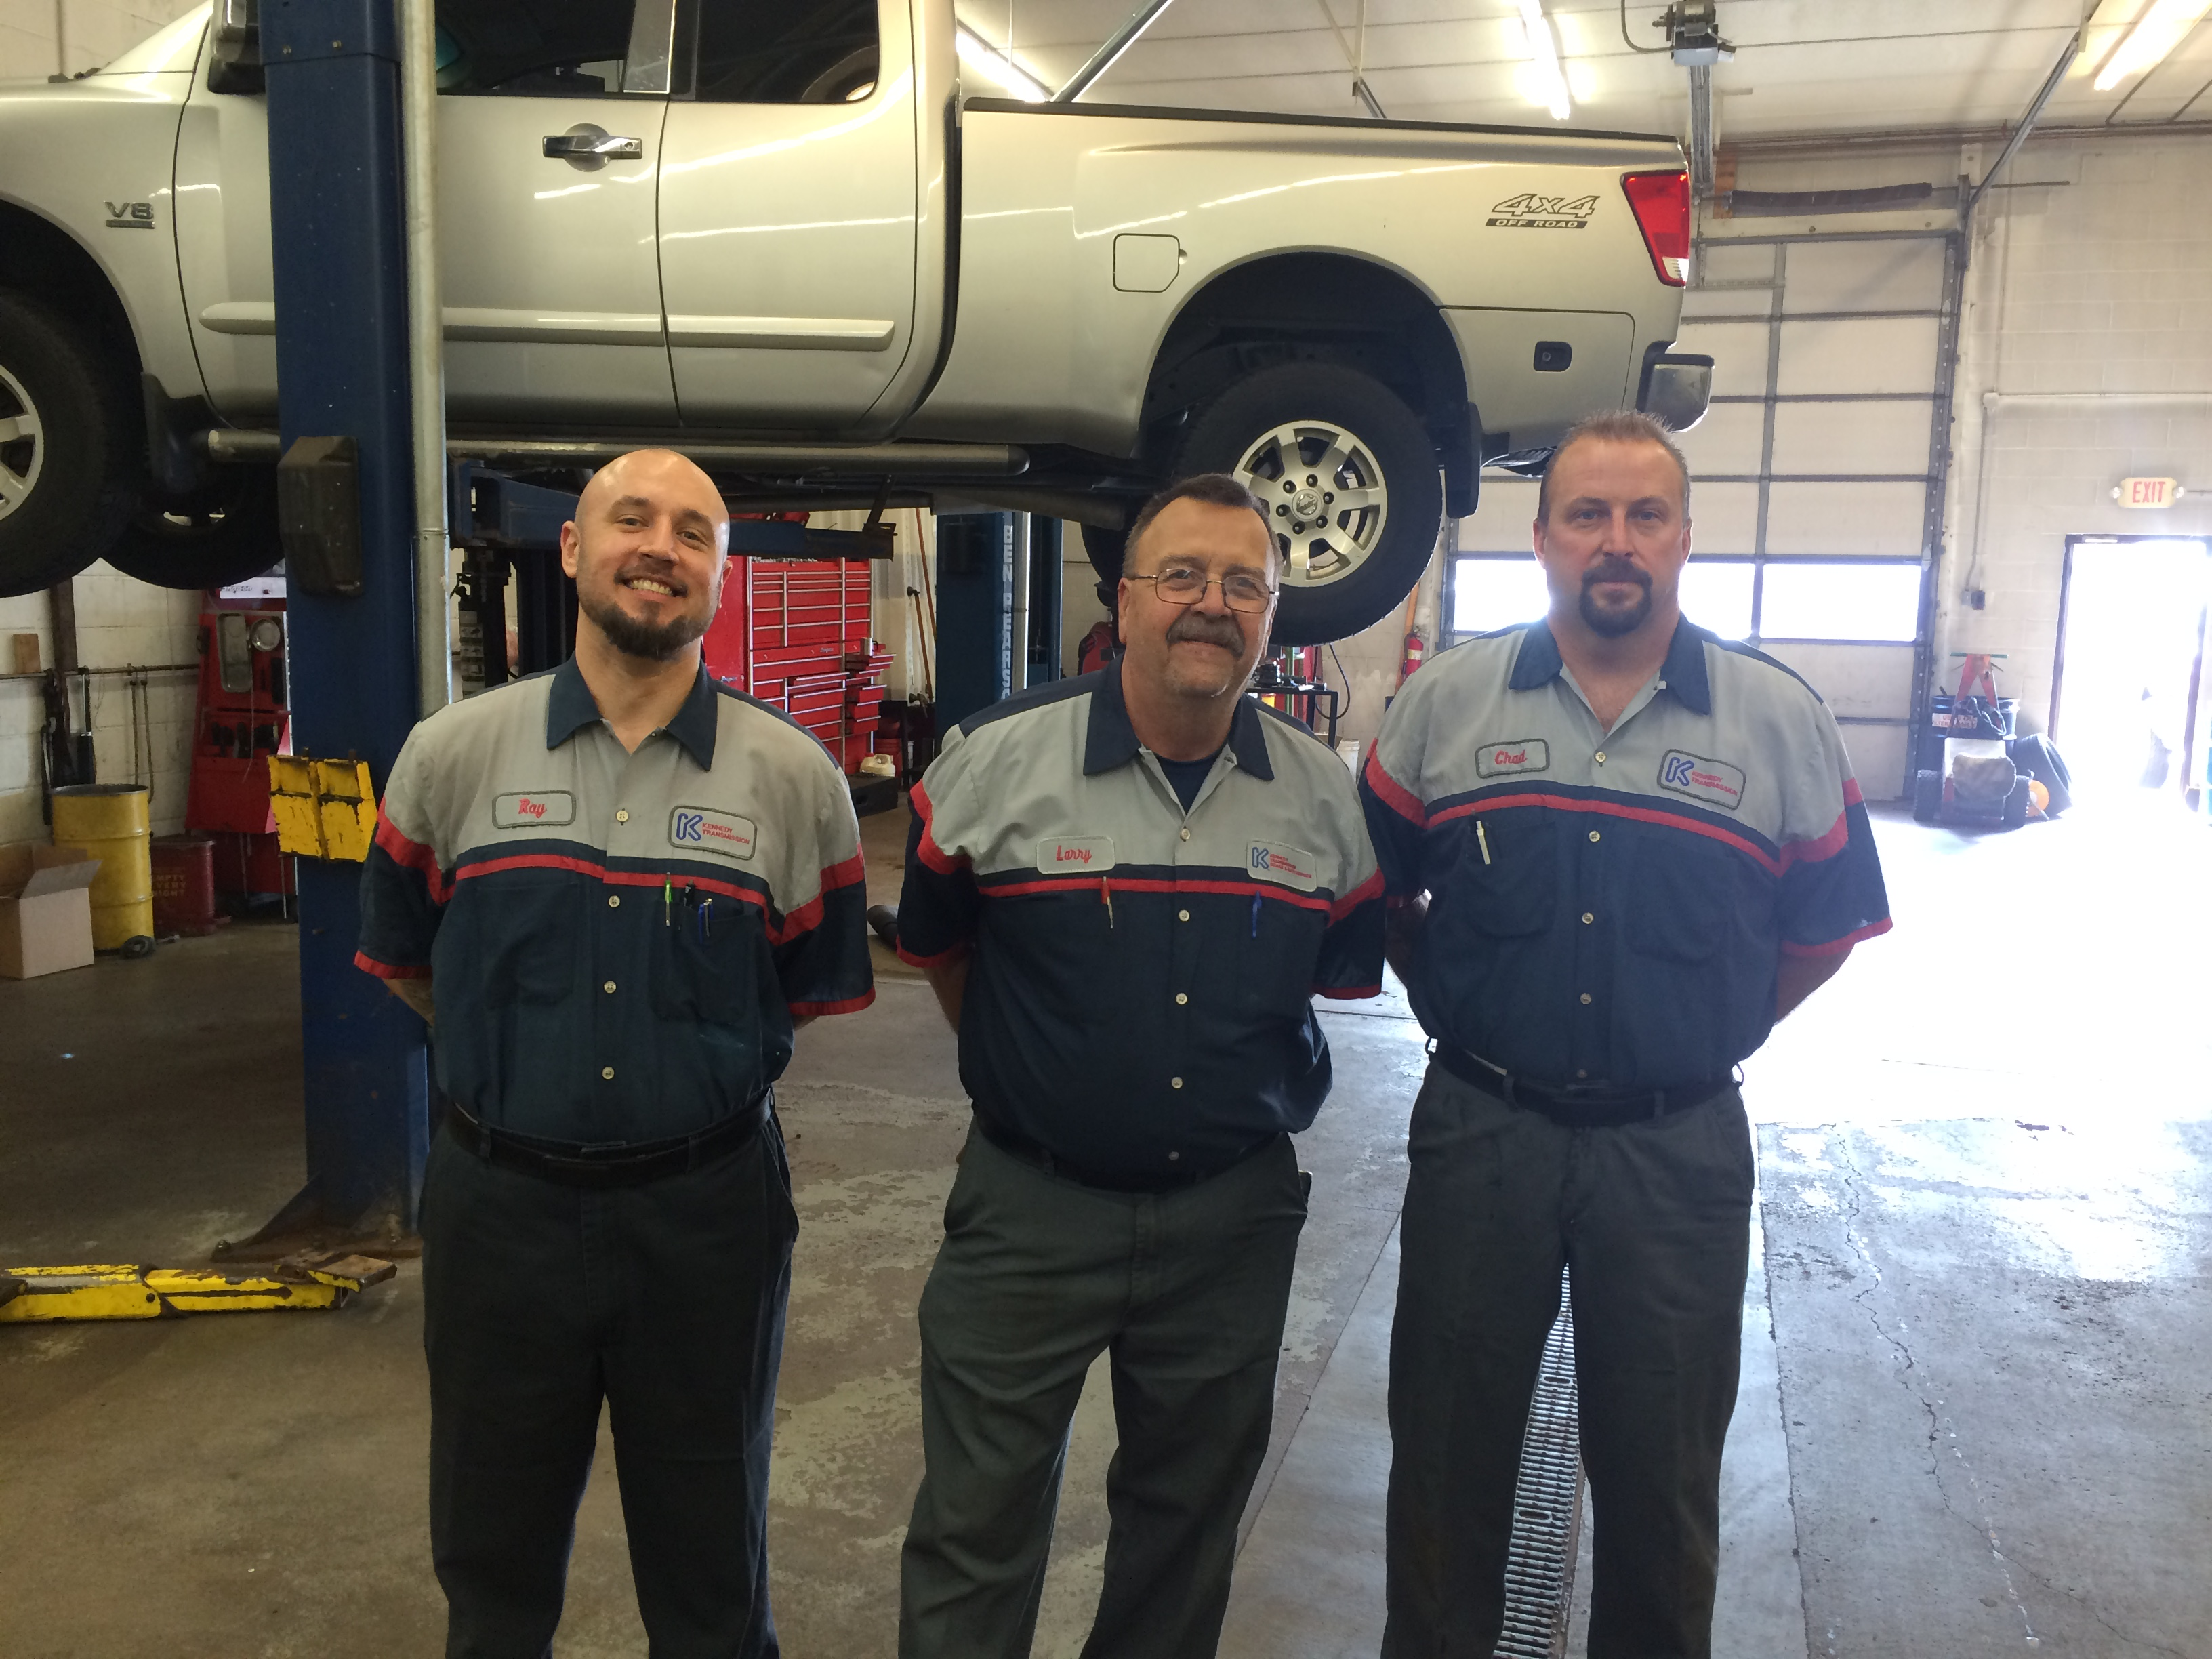 Kennedy Transmission - Bloomington, MN Shop - Ray Wetch, Larry Grahn, & Chad Exum